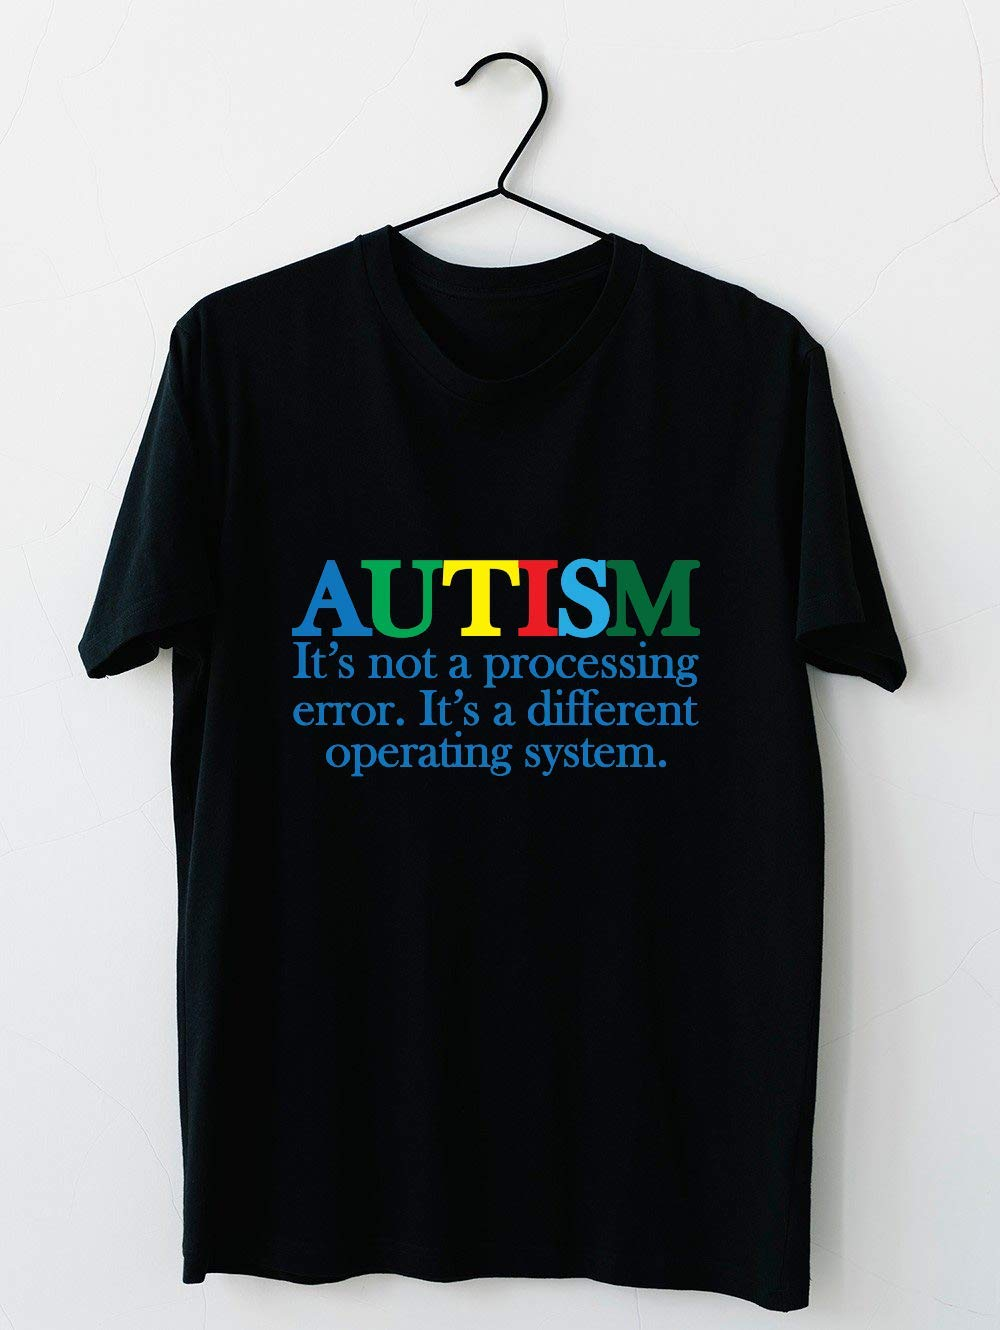 Autism Operating System 53 T Shirt For Unisex